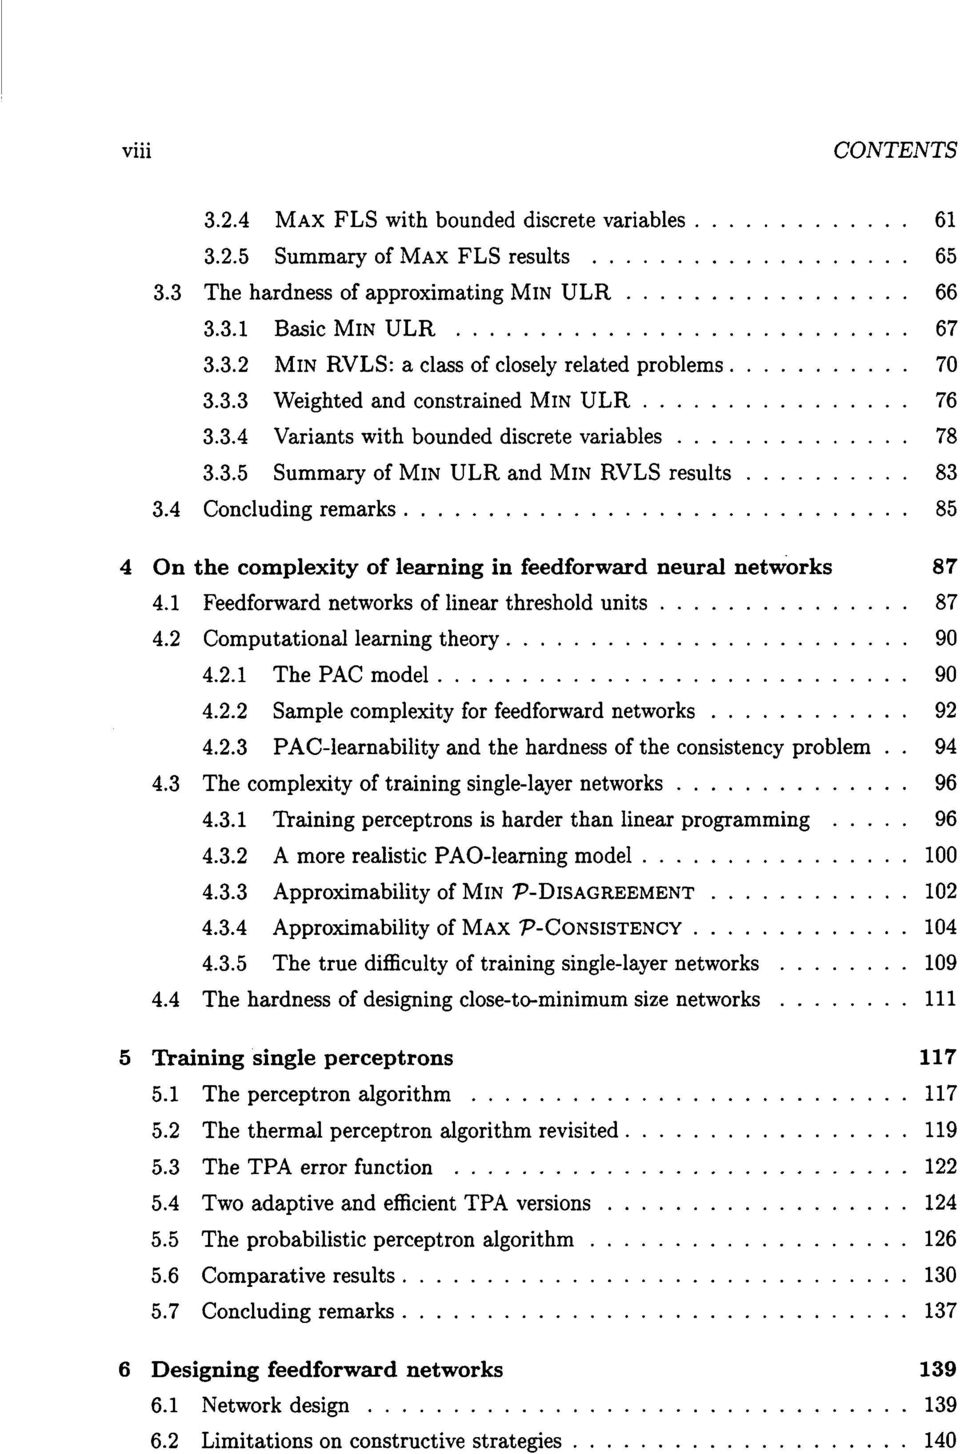 ... 85 4 On the complexity of learning in feedforward neural networks 87 4.1 Feedforward networks of linear threshold units... 87 4.2 Computational learning theory.... 90 4.2.1 The PAC mode1.... 90 4.2.2 Sample complexity for feedforward networks.